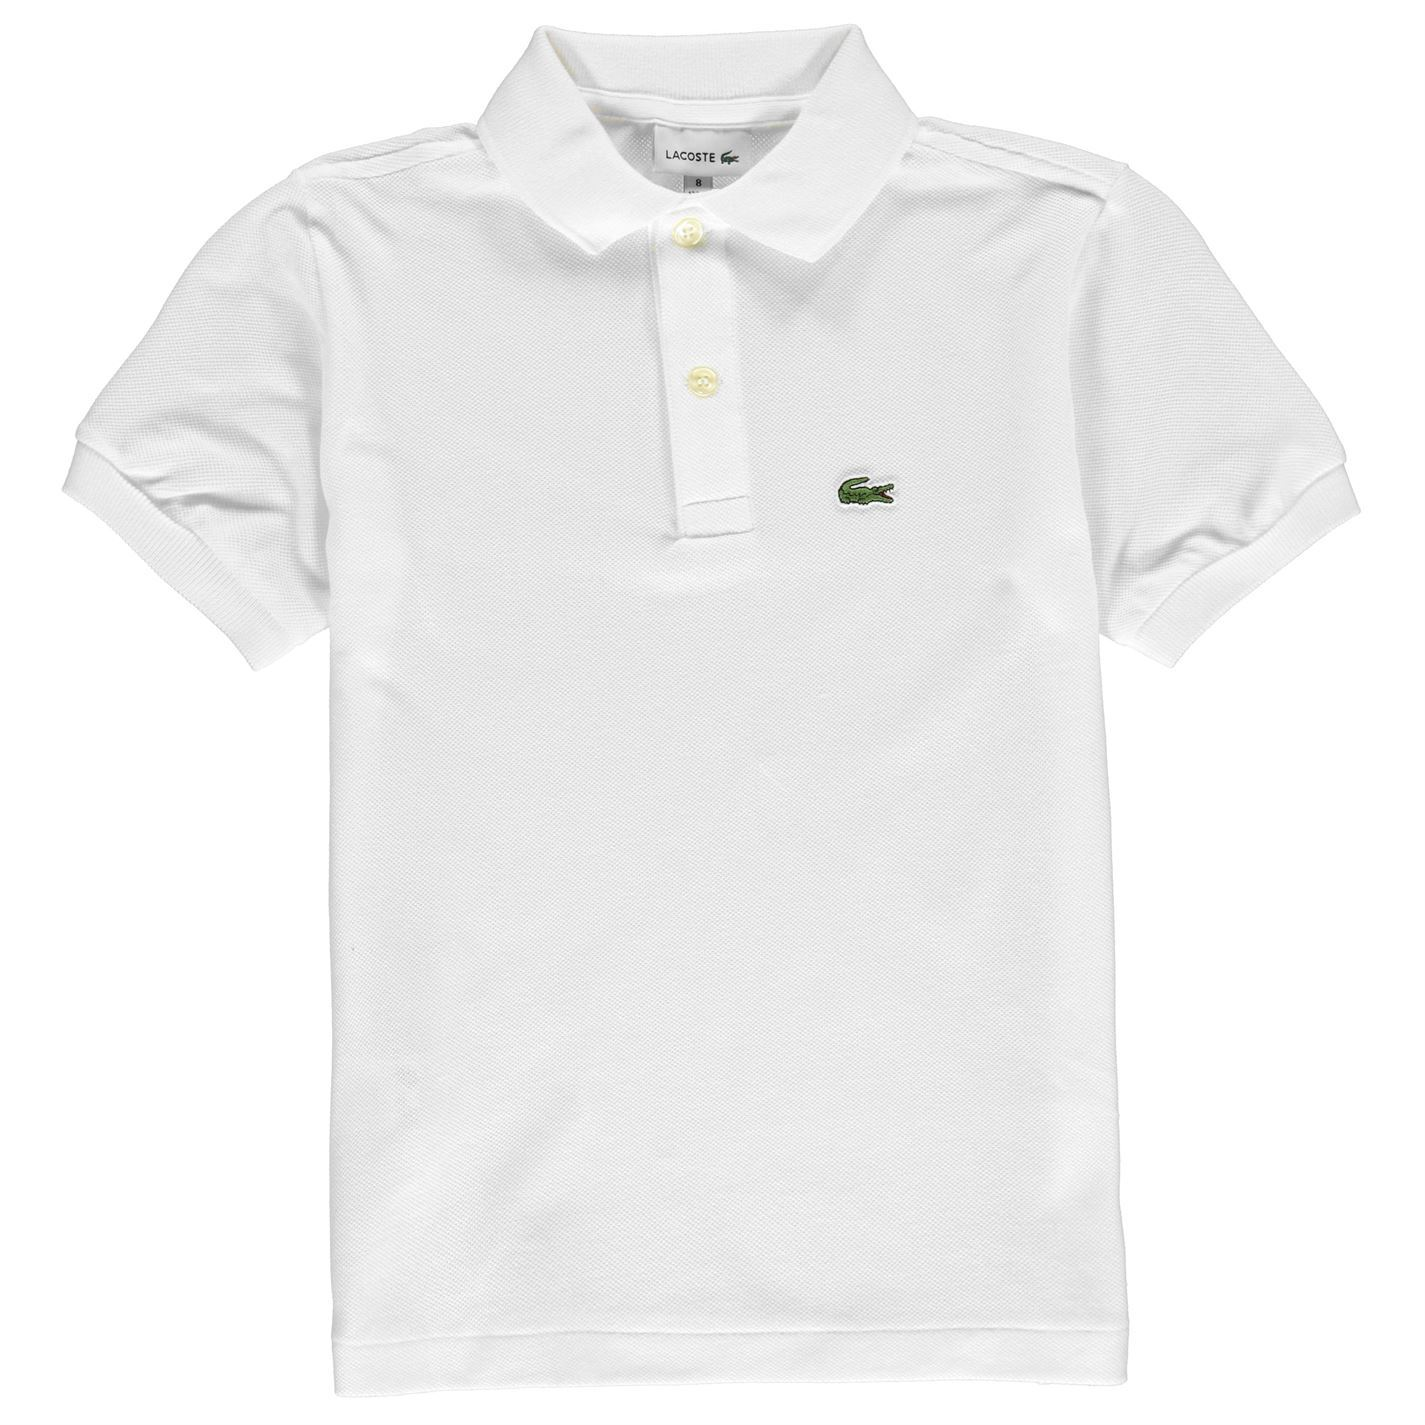 54fc3ddd7 Cheap Childrens Lacoste Polo Shirts